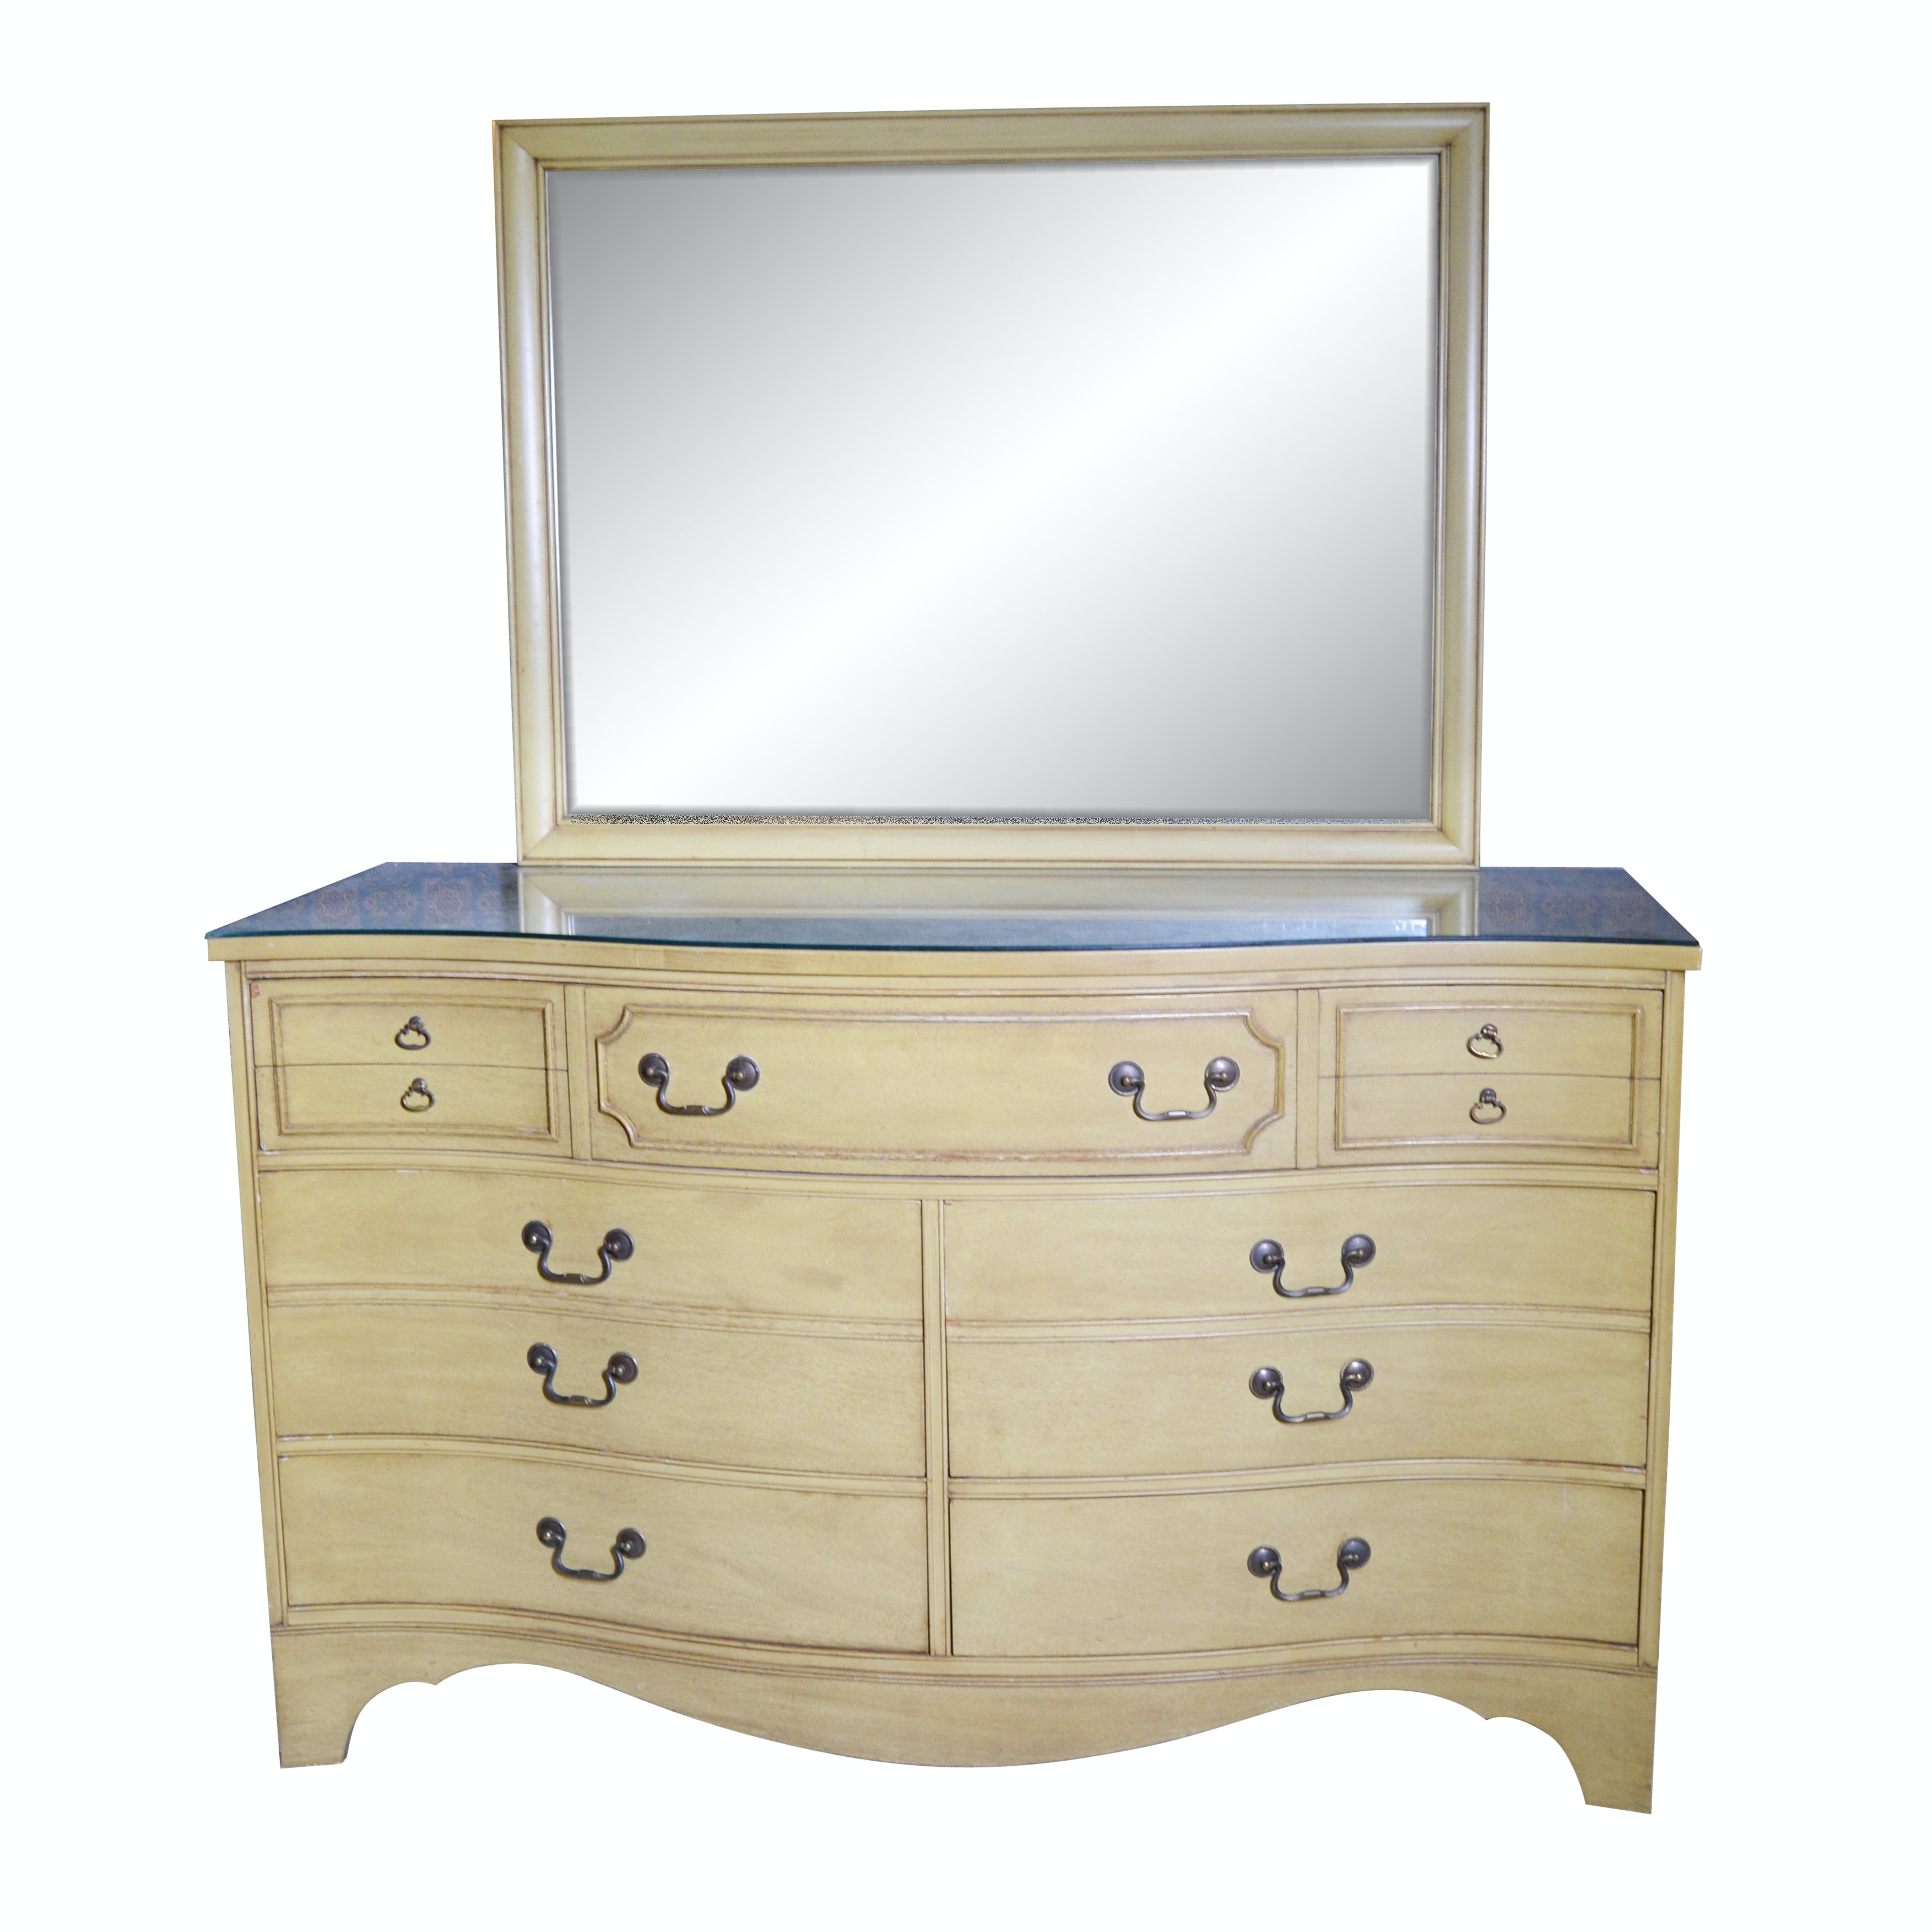 George III Style Mahogany Chest of Drawers with Mirror, Mid-20th Century